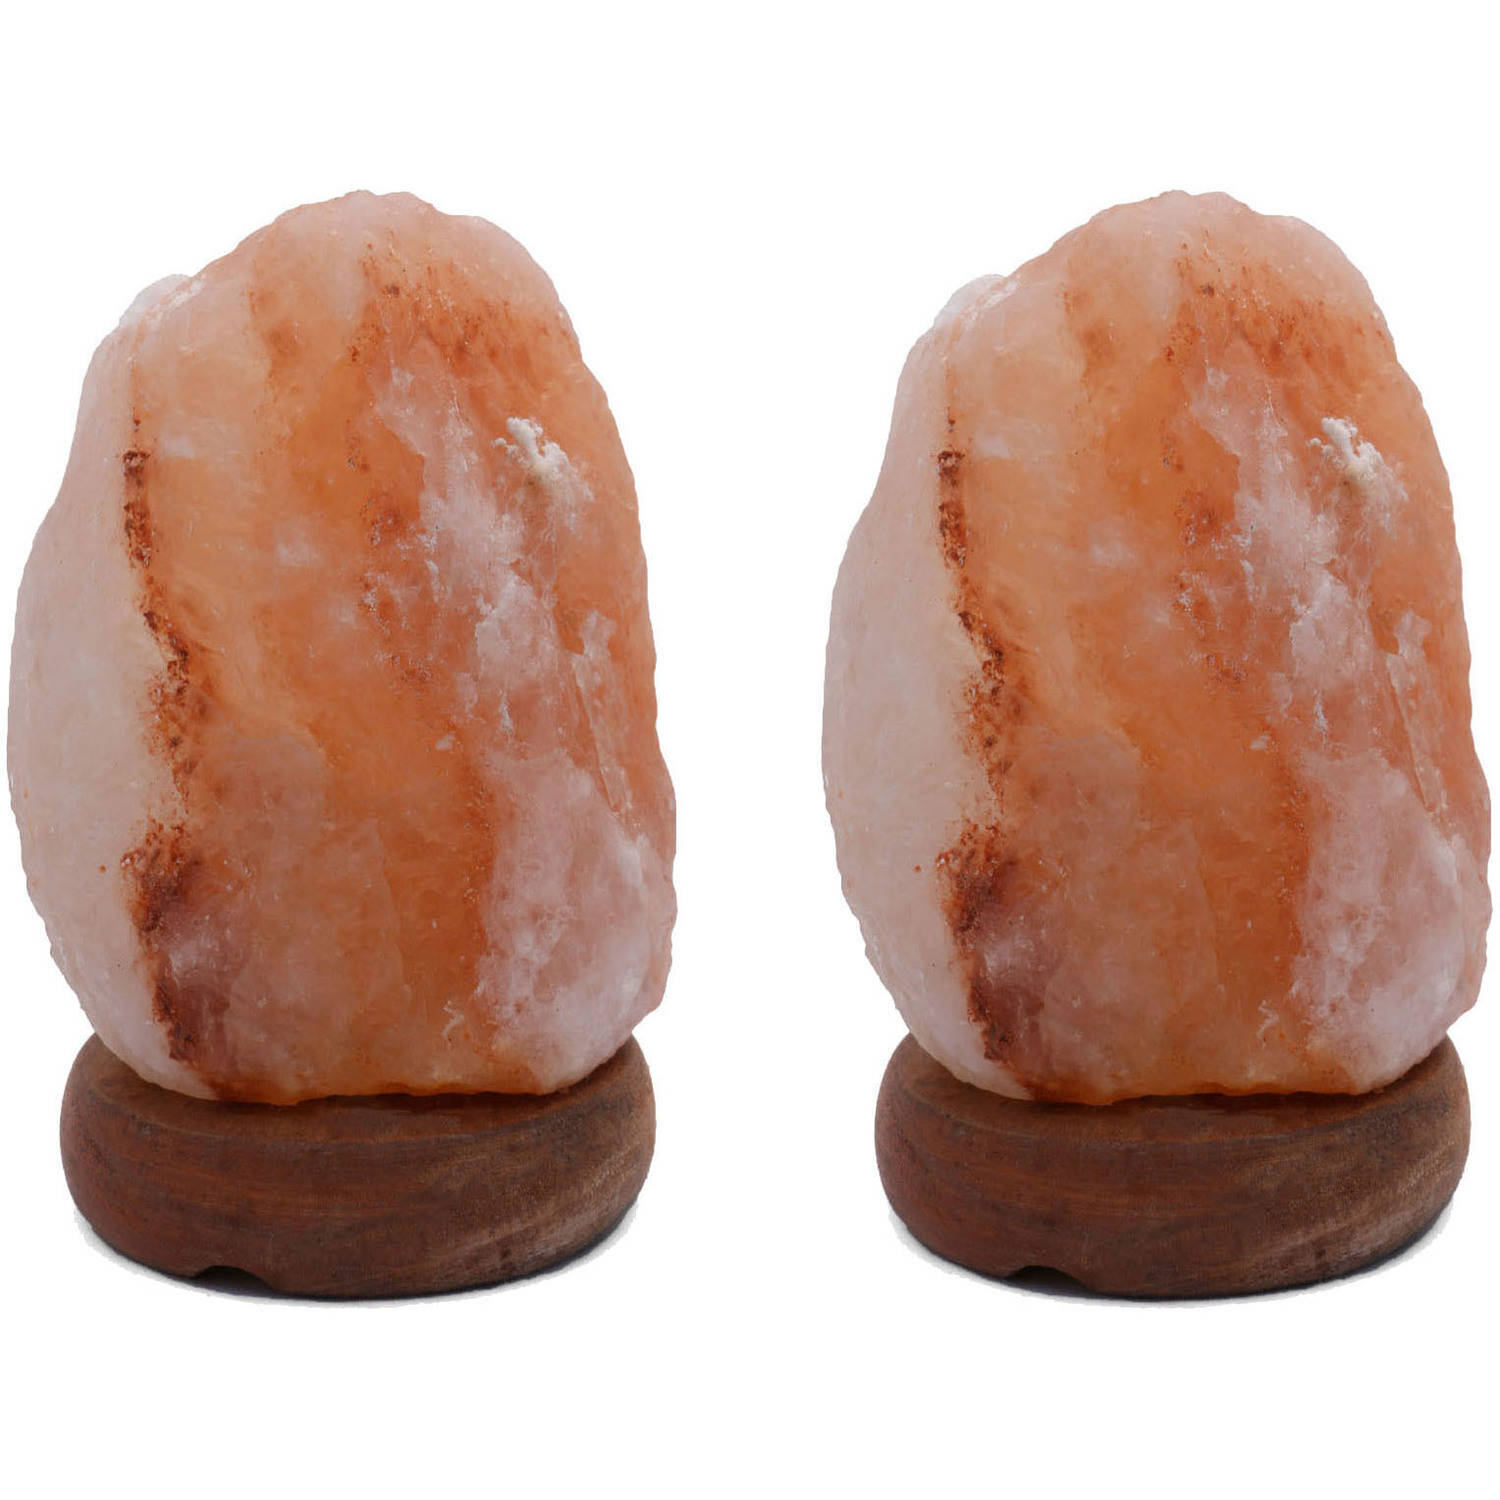 "Accentuations by Manhattan Comfort 8"" Natural Shaped Himalayan Salt Lamp 1.8, Set of 2 with Dimmer by Manhattan Comfort"